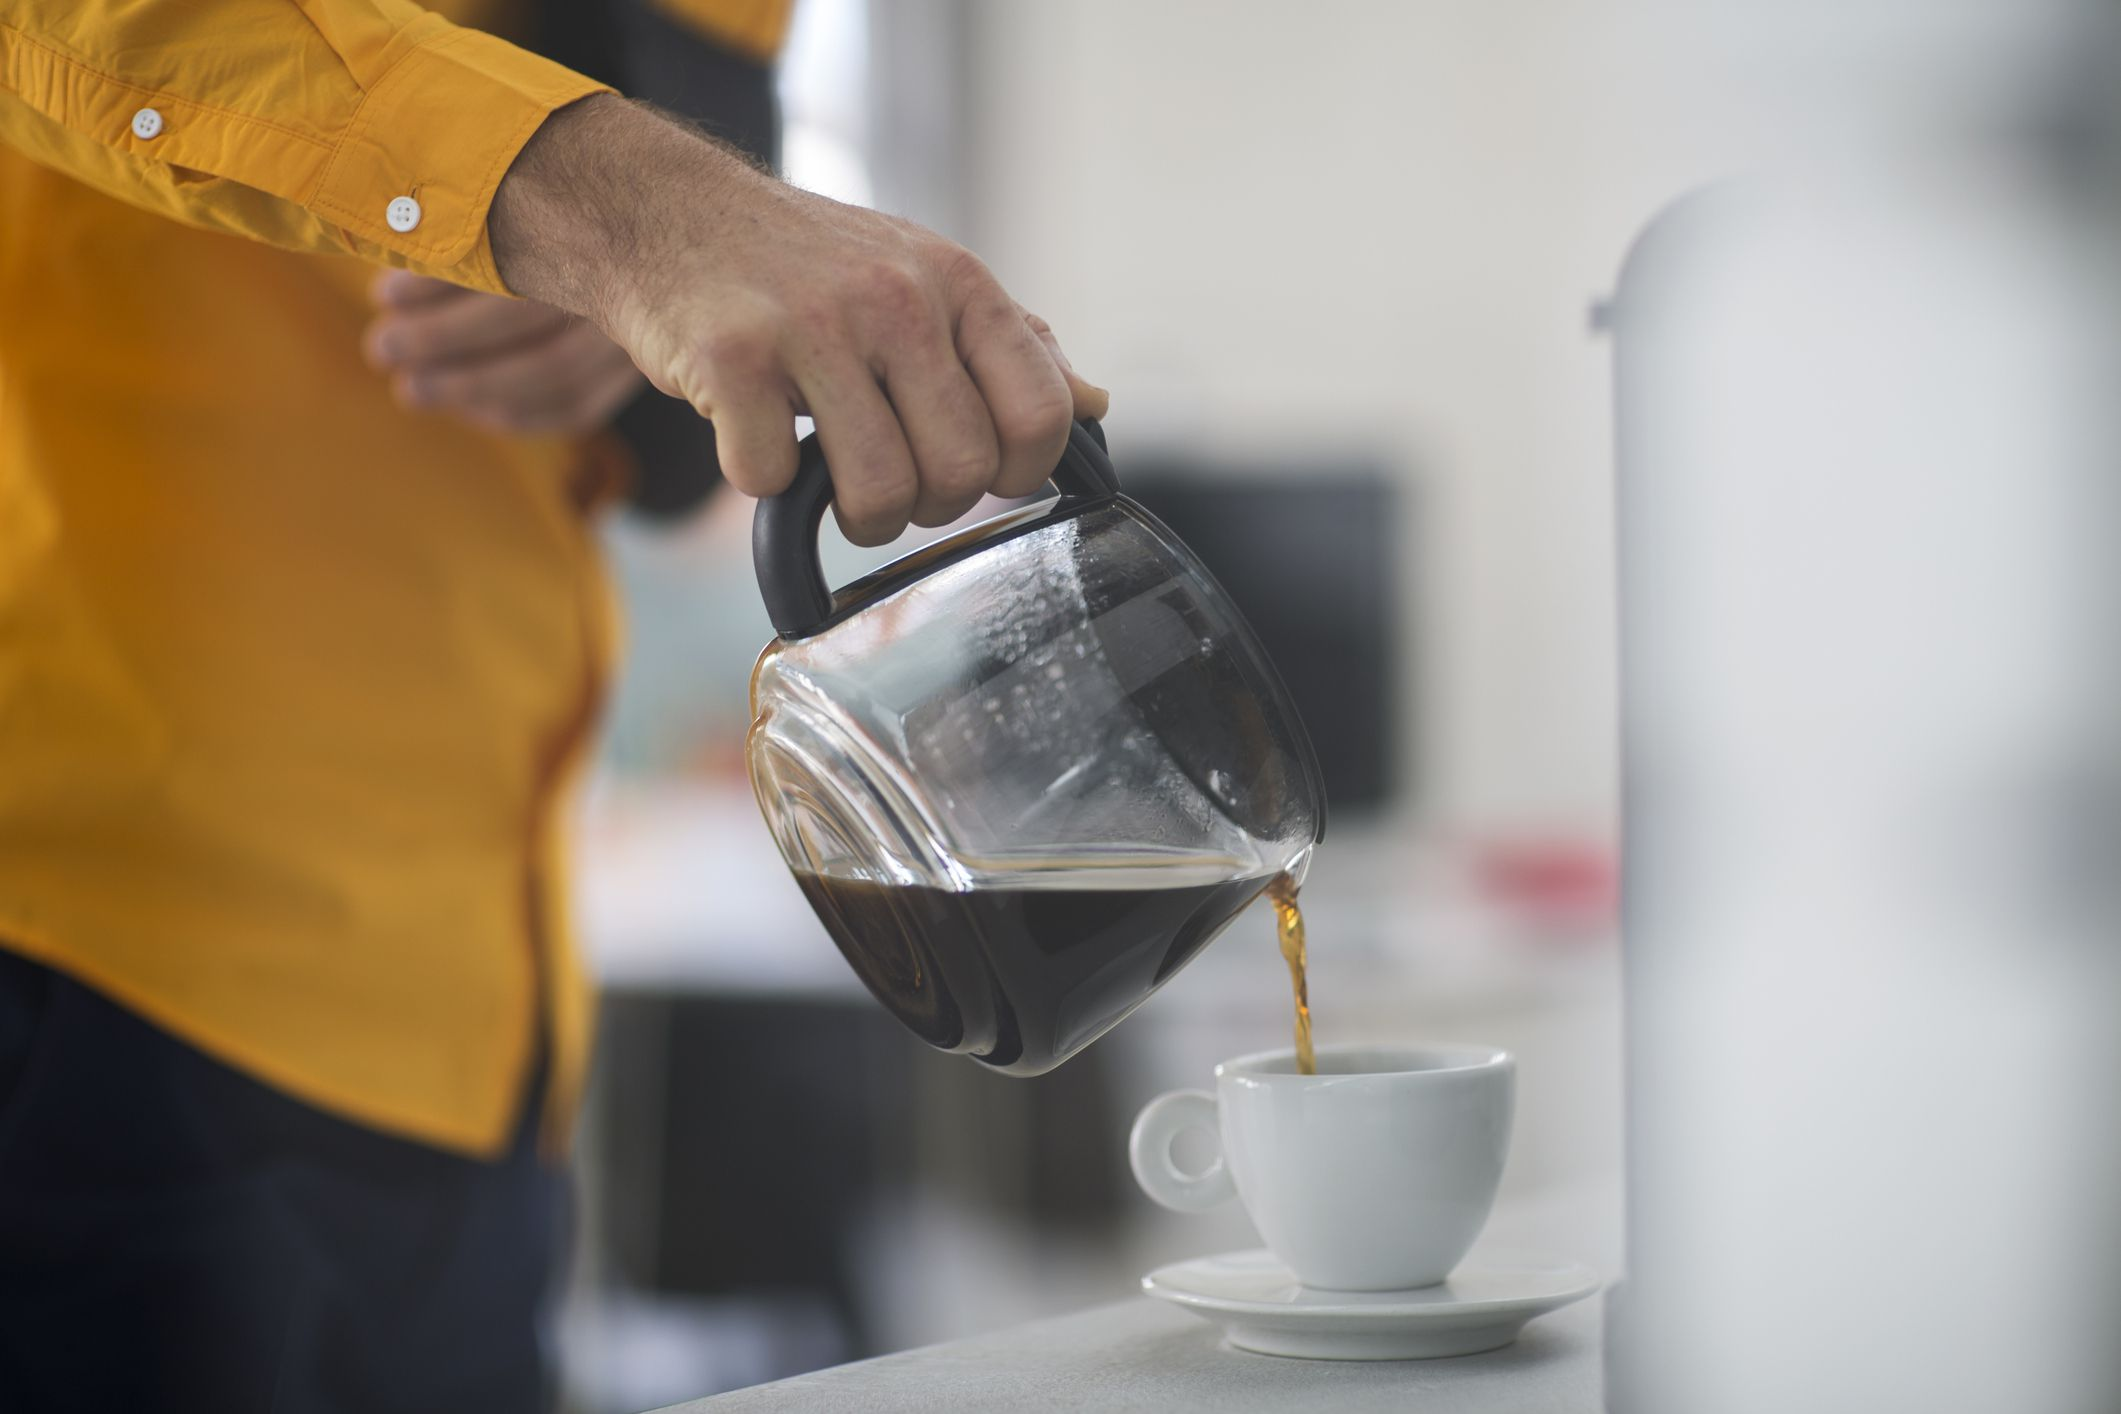 0bfd300a27b The 8 Best Office Coffee Makers of 2019